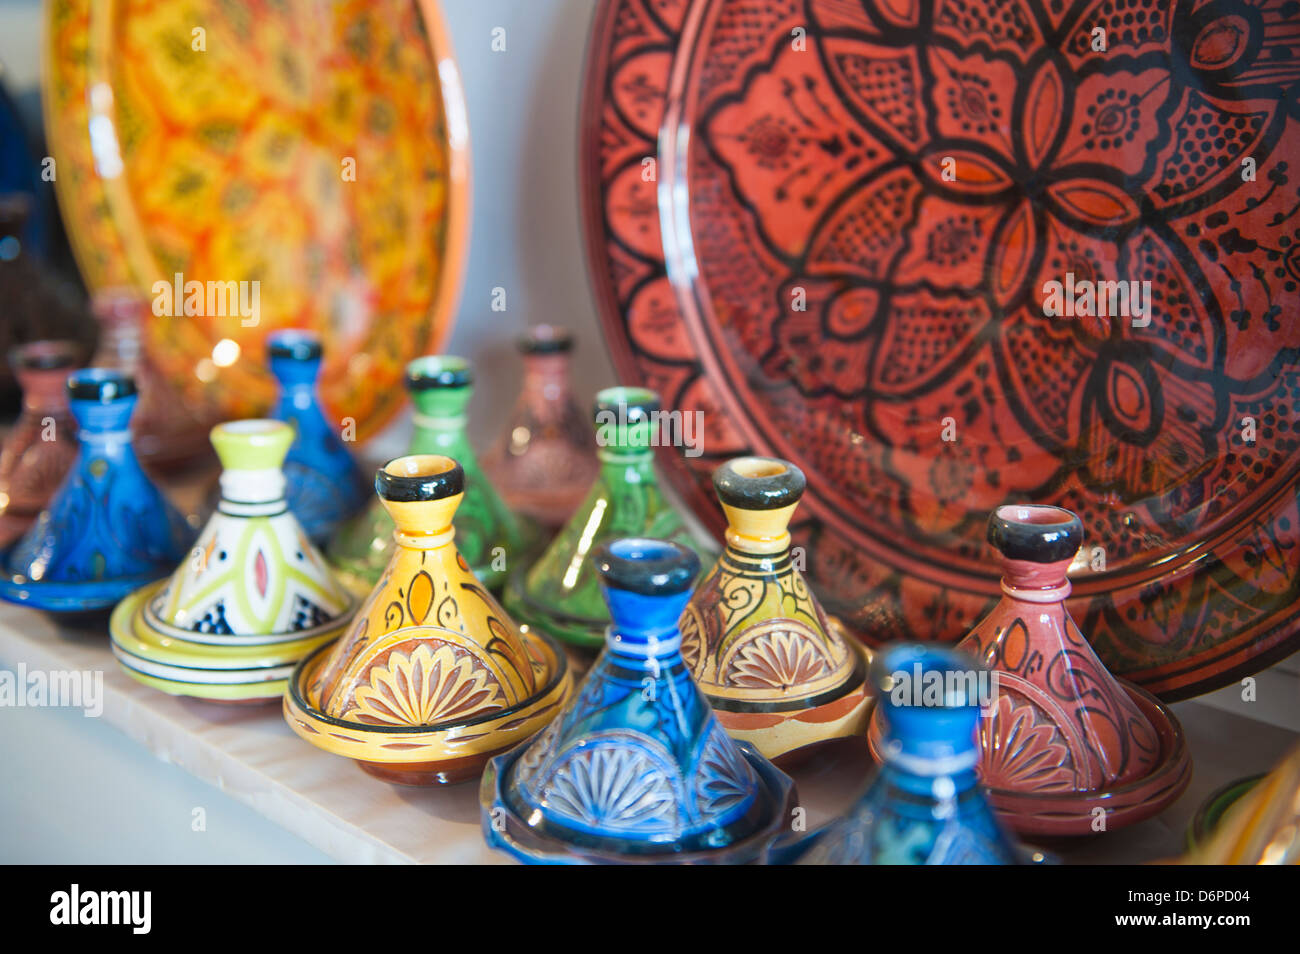 Ceramics for sale, Essaouira, formerly Mogador, Morocco, North Africa, Africa - Stock Image